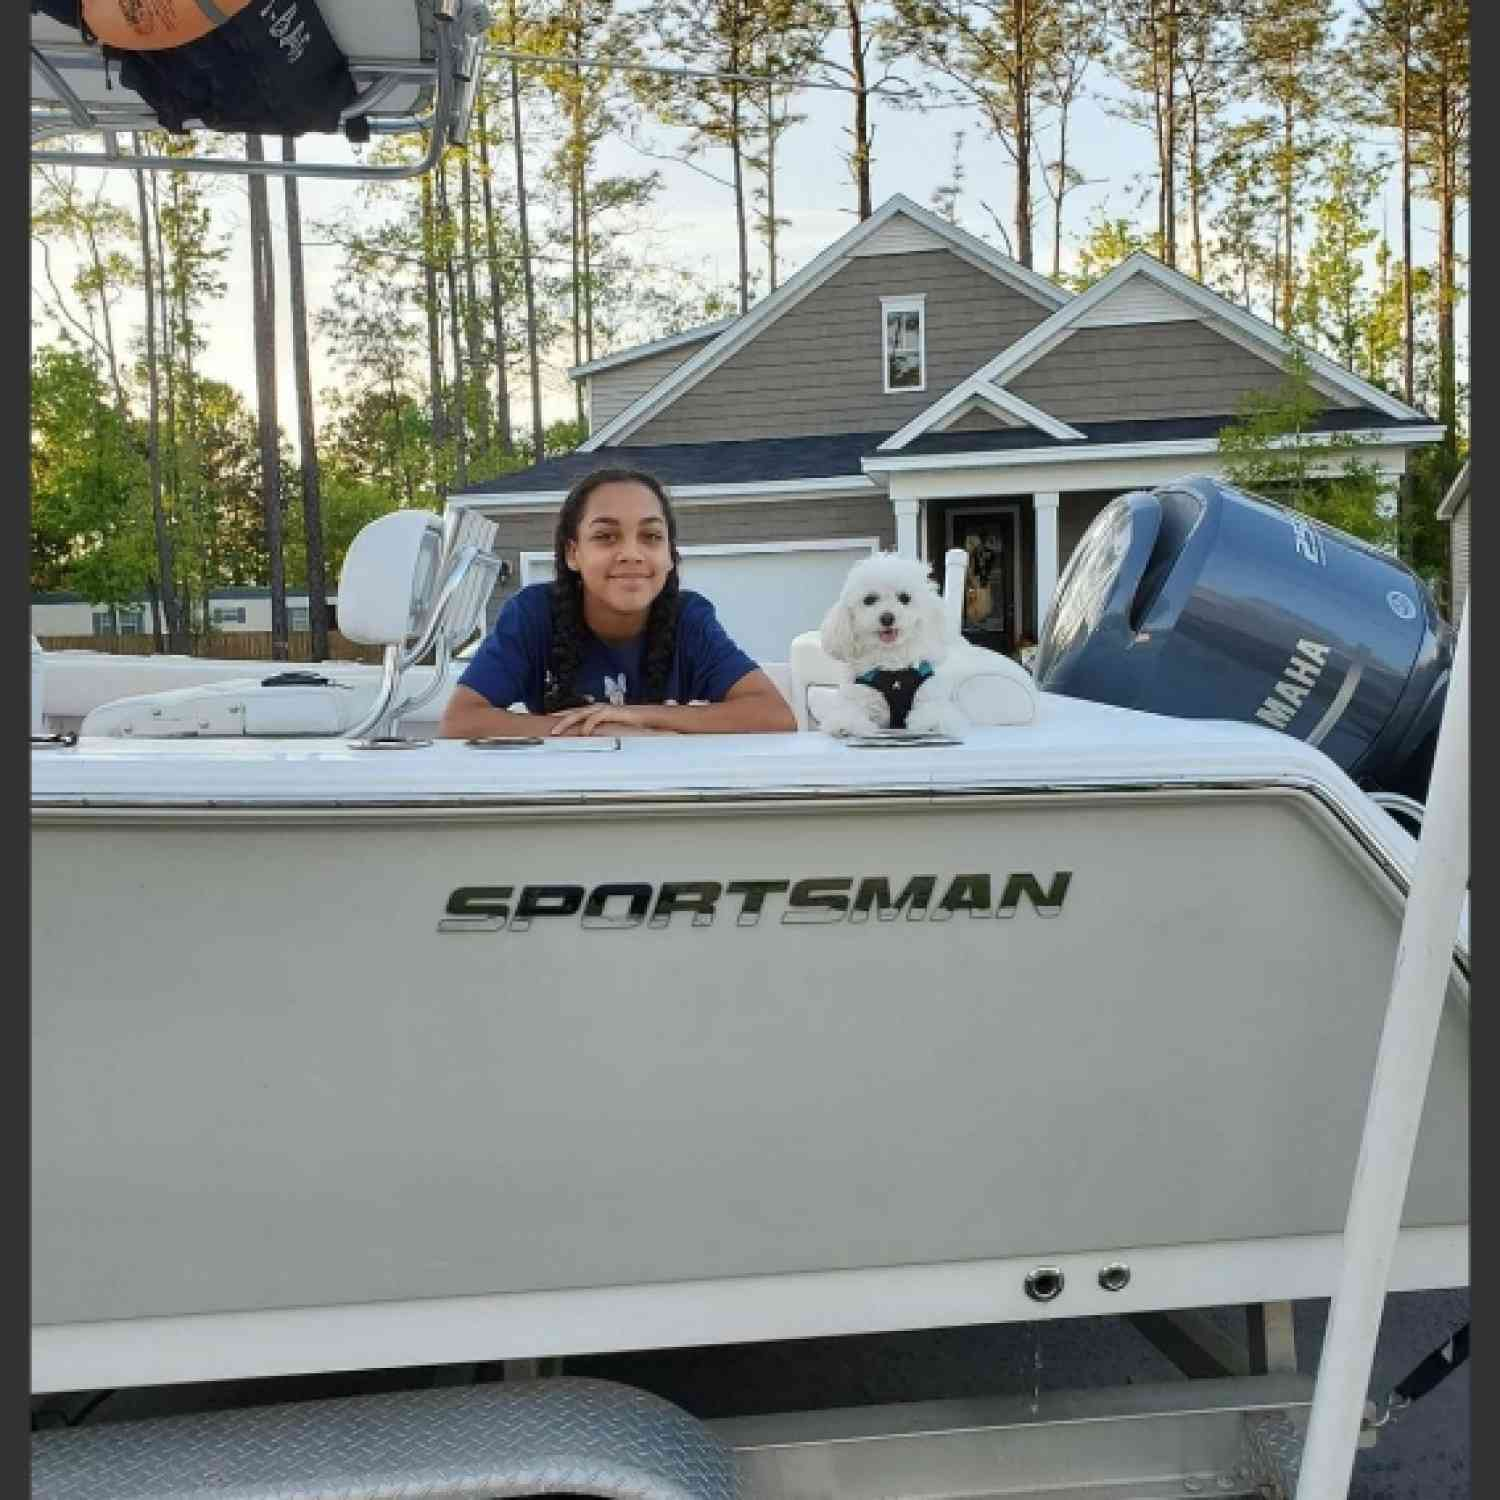 Title: A couple of youngins ready to ride! - On board their Sportsman Heritage 231 Center Console - Location: Summerville, sc. Participating in the Photo Contest #SportsmanMay2020